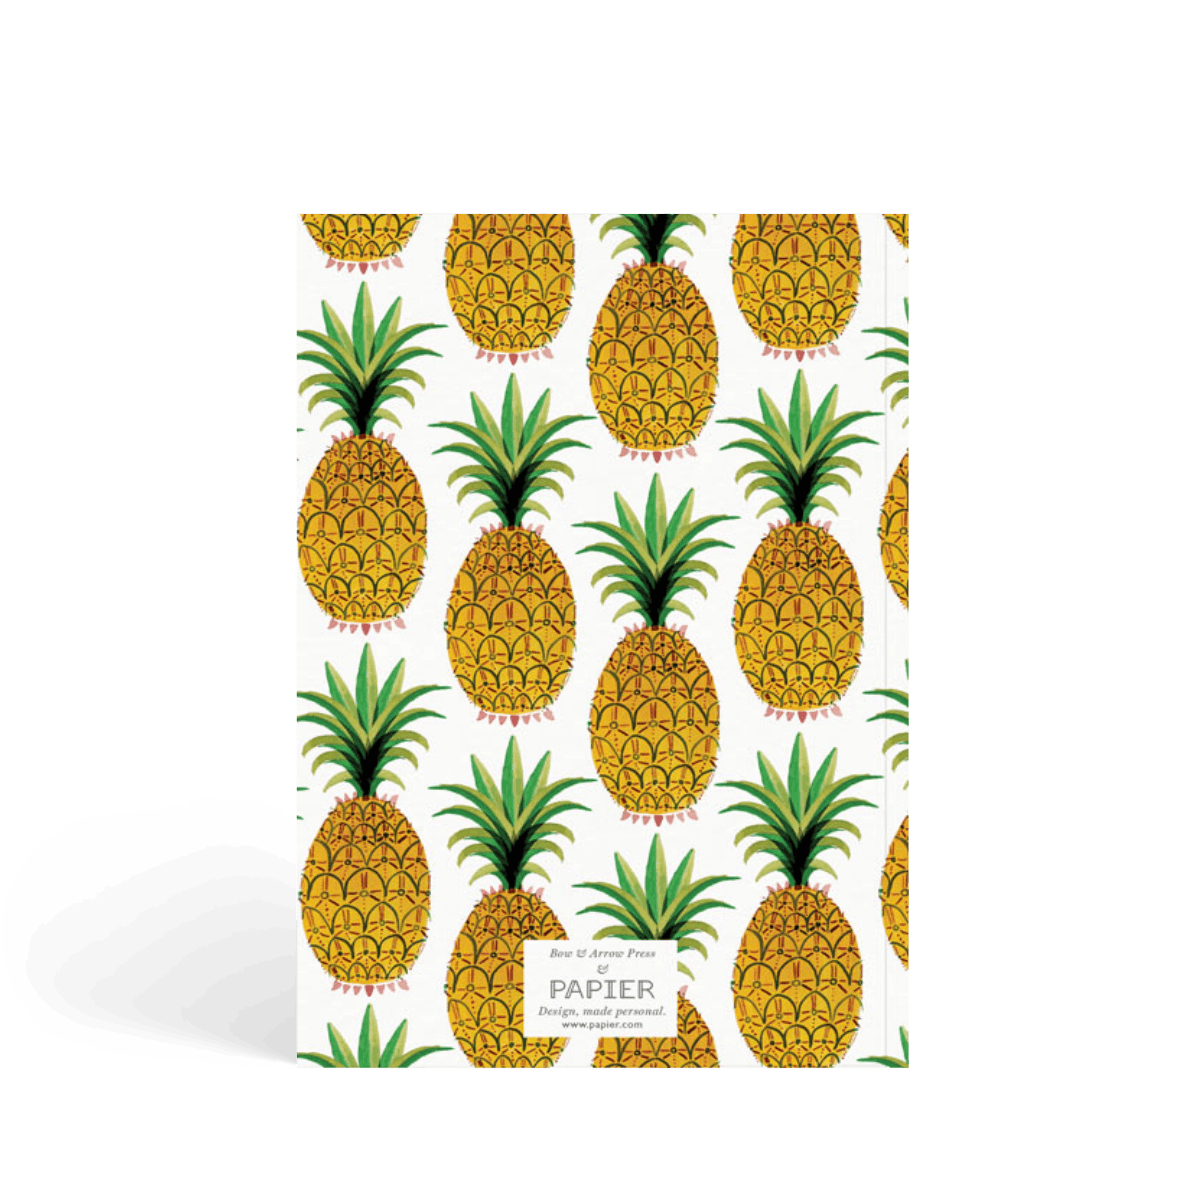 Https%3a%2f%2fwww.papier.com%2fproduct image%2f36170%2f5%2fpineapple 9083 back 1523907306.png?ixlib=rb 1.1